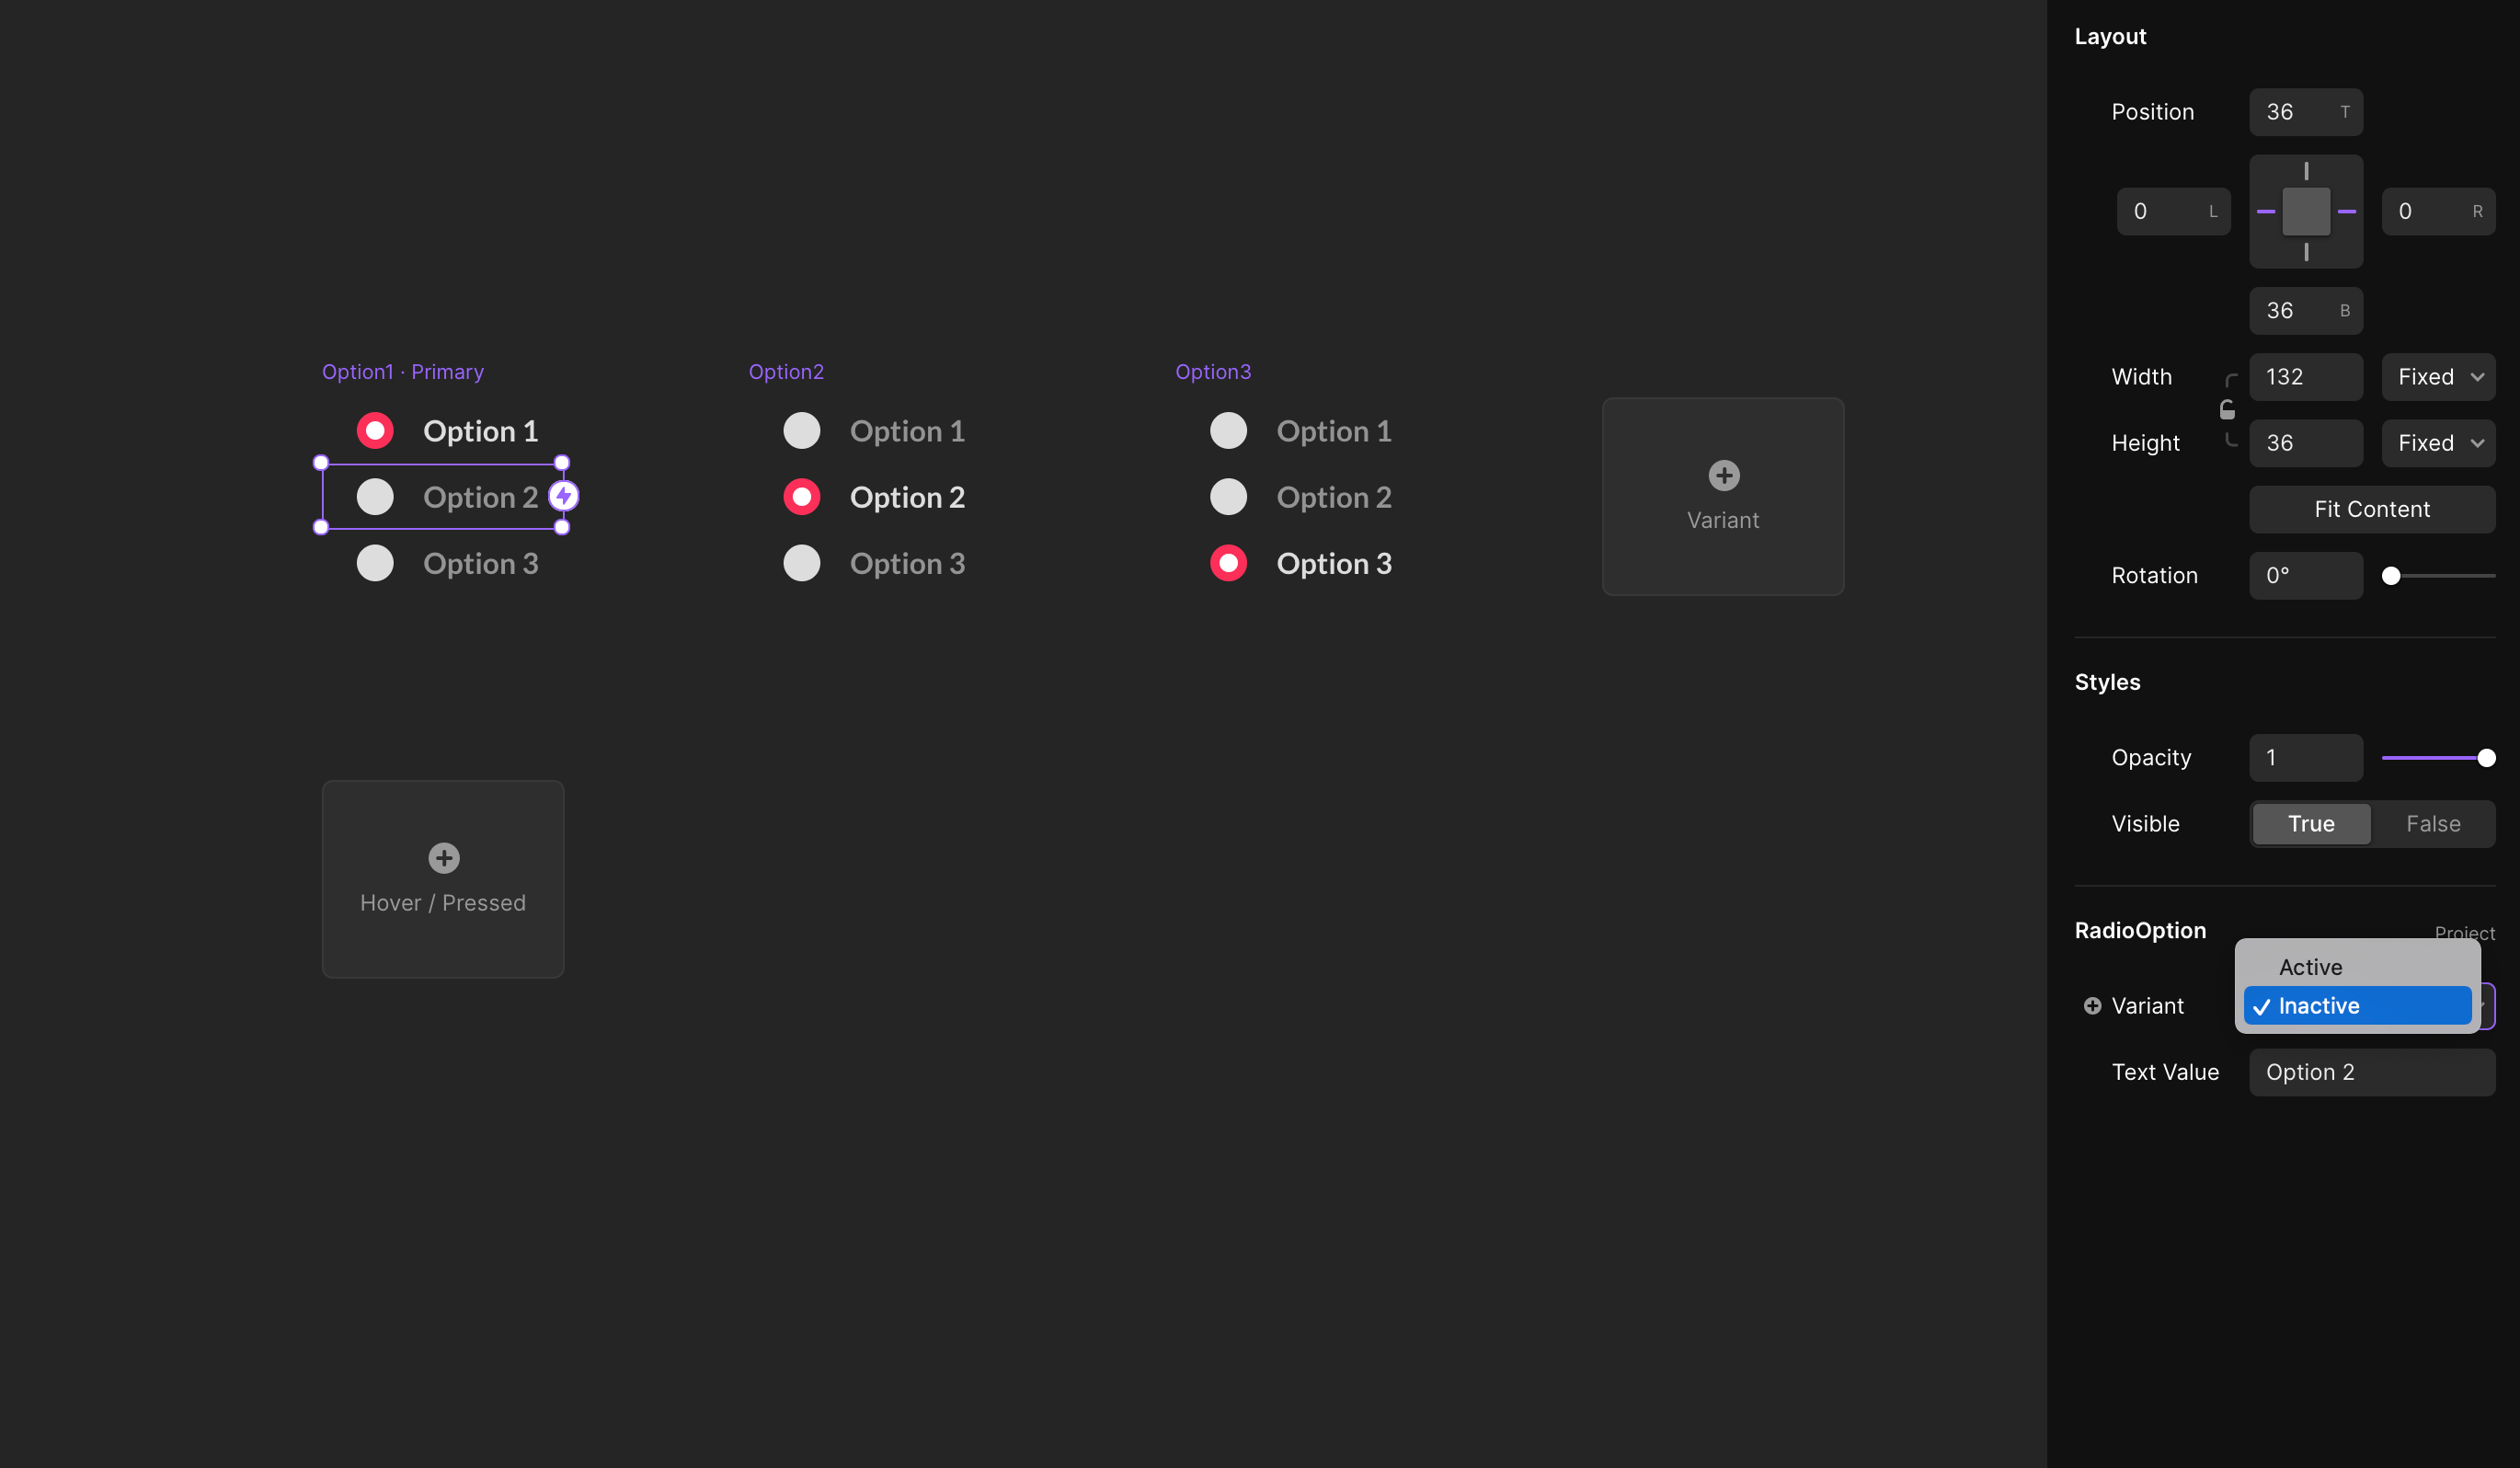 For each nested component, we choose the active or inactive variant from the properties panel.